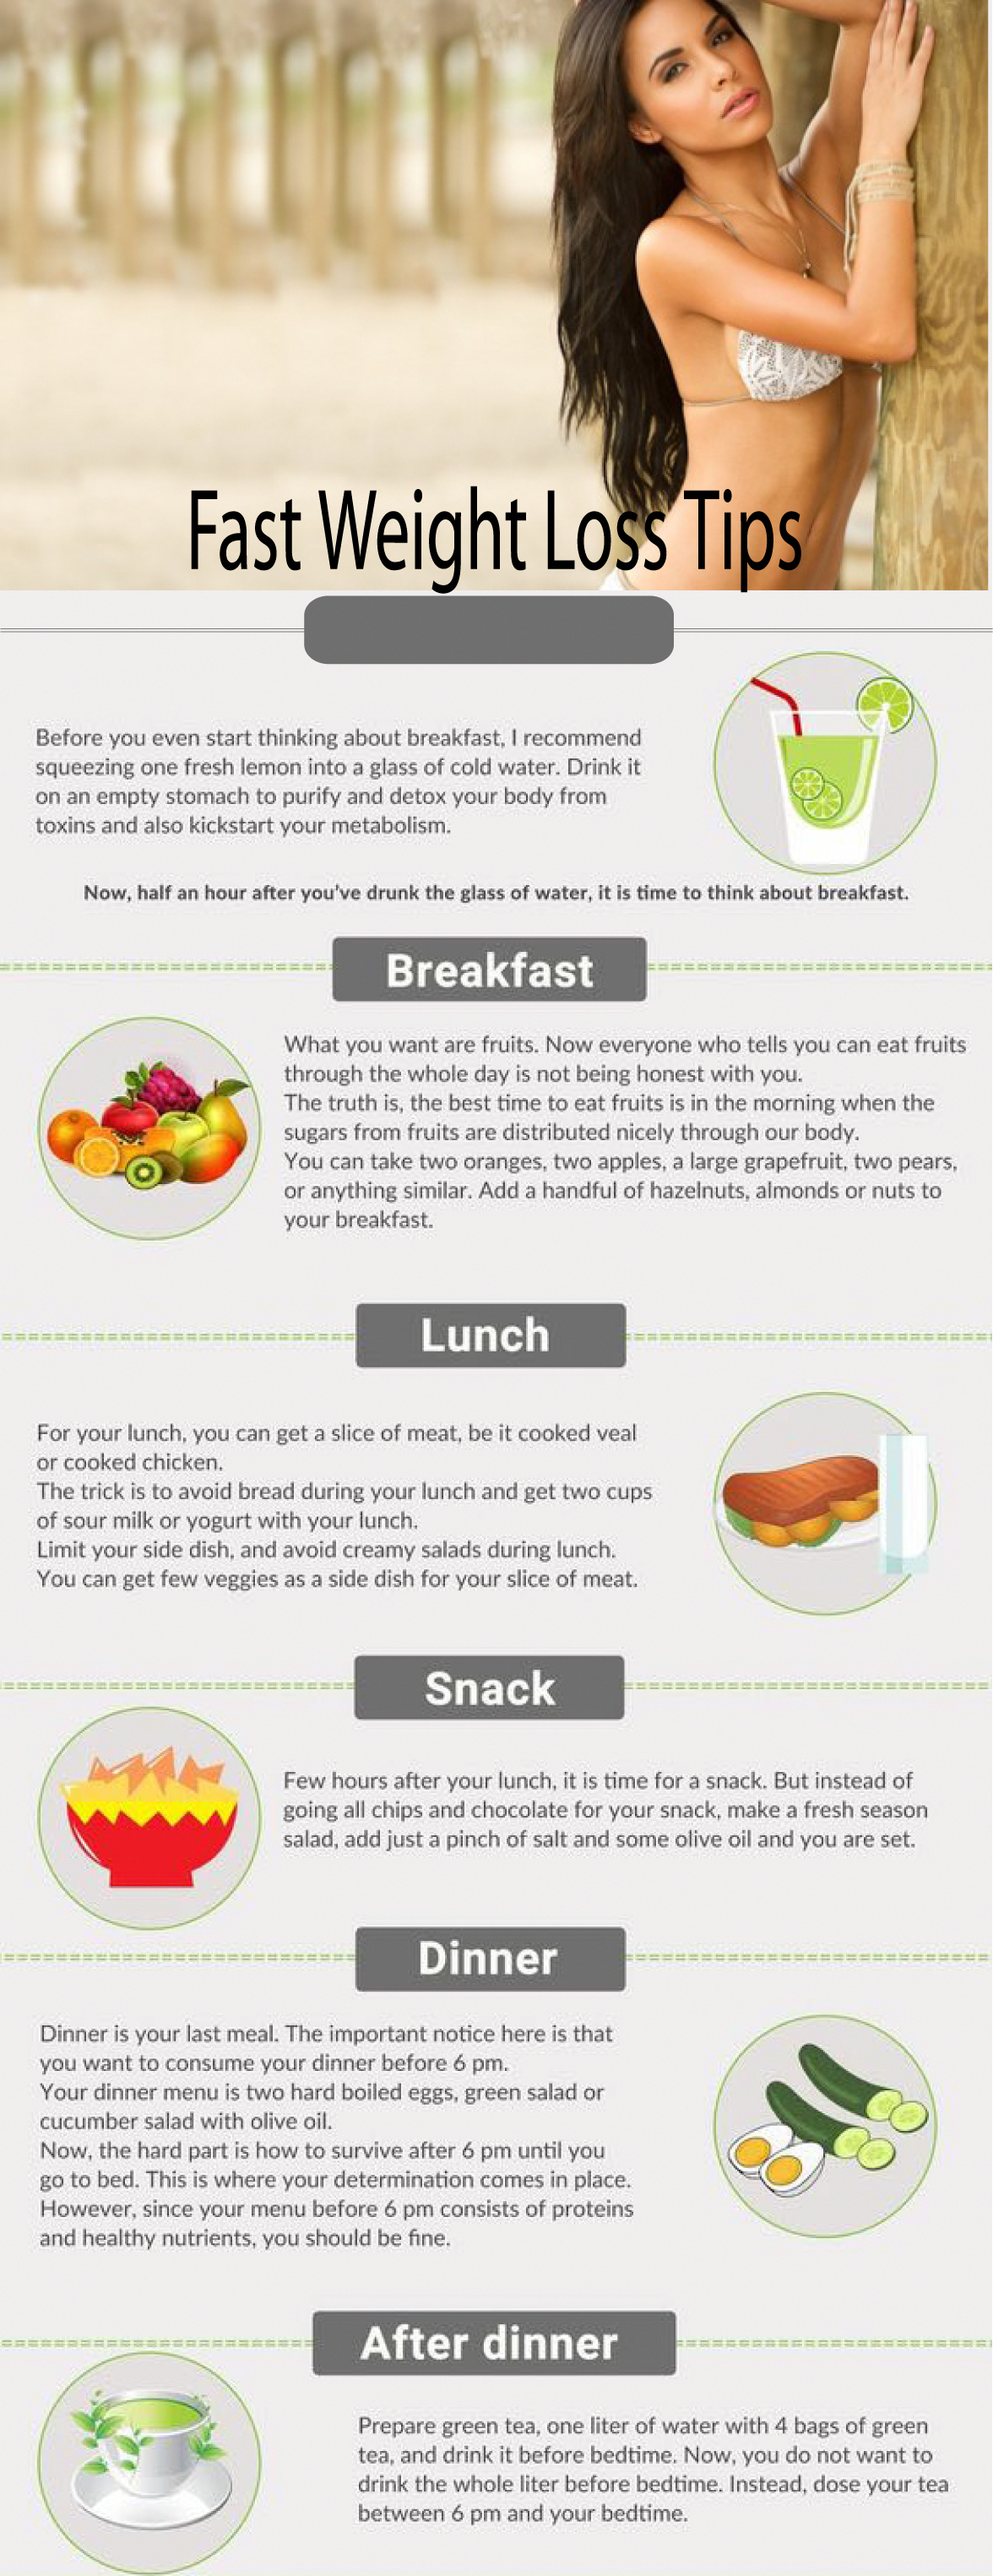 Fast weight loss diet tips #easyweightloss <= | great ways to lose weight fast at home#gym #slimmingworld #workout